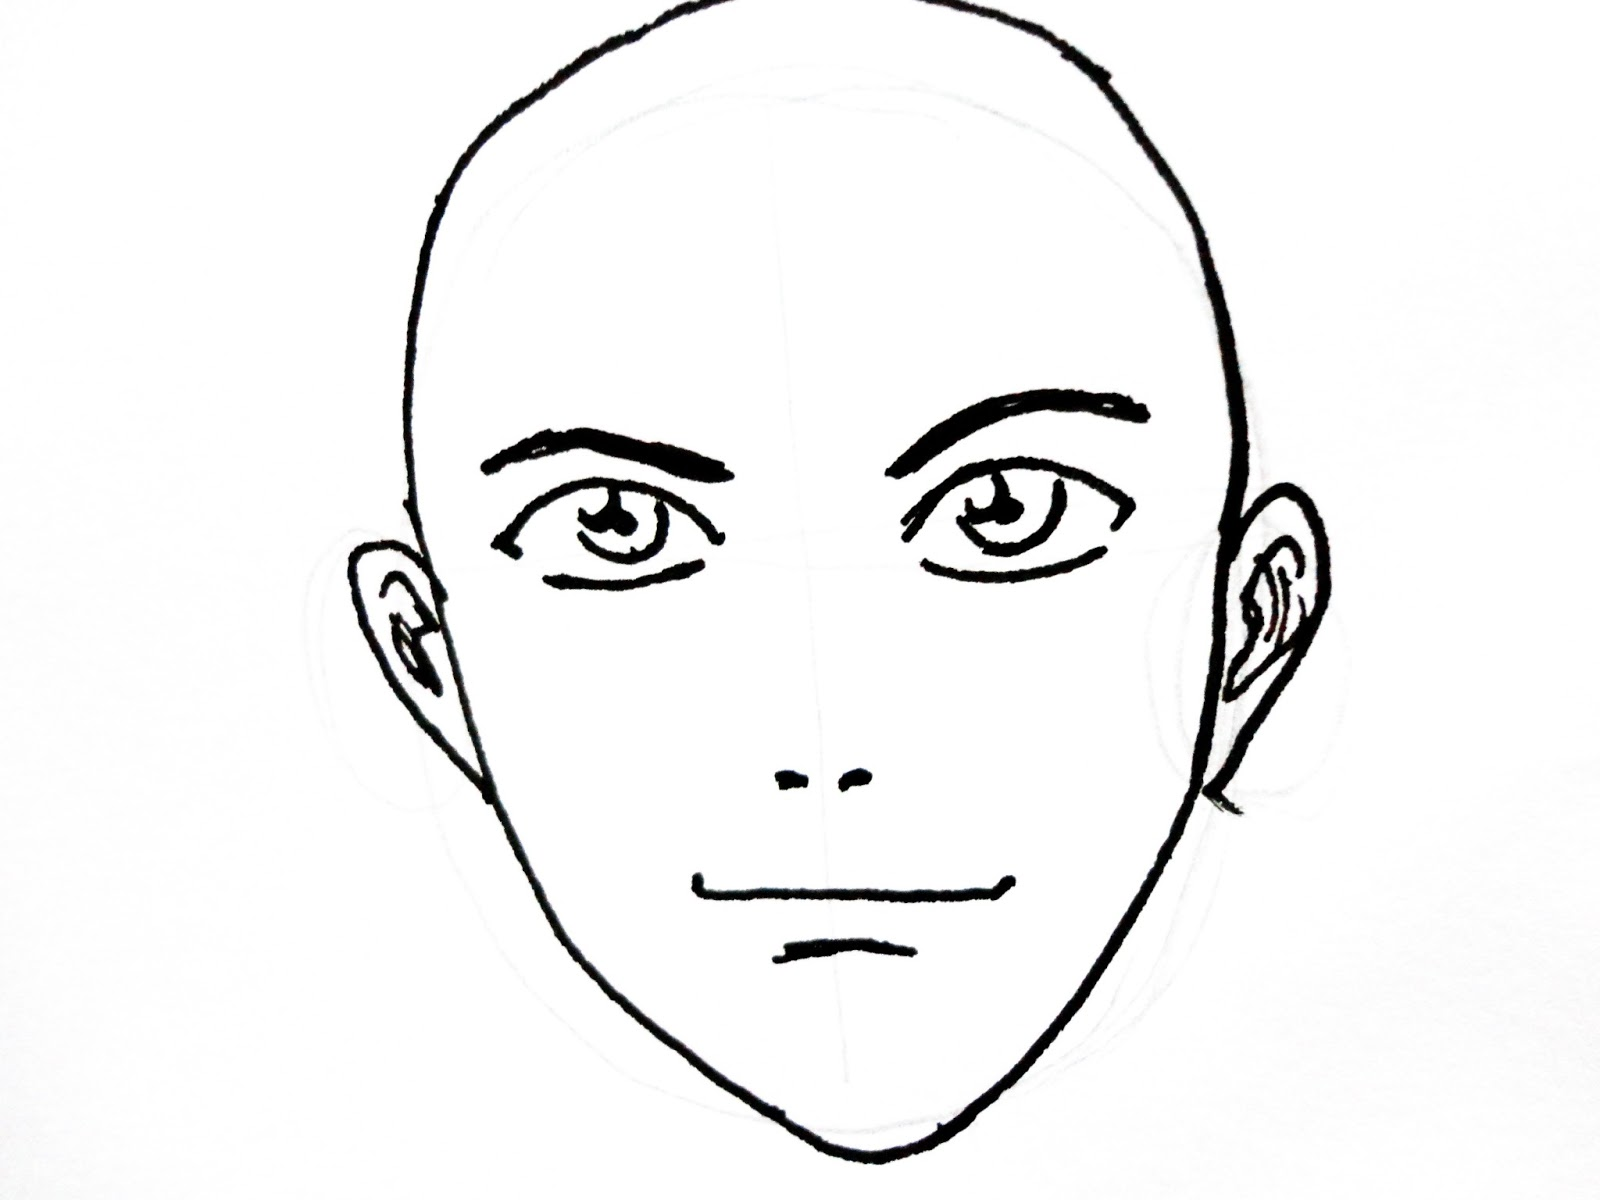 Line Drawing Of Cartoon Face : Cartoon party drawing face